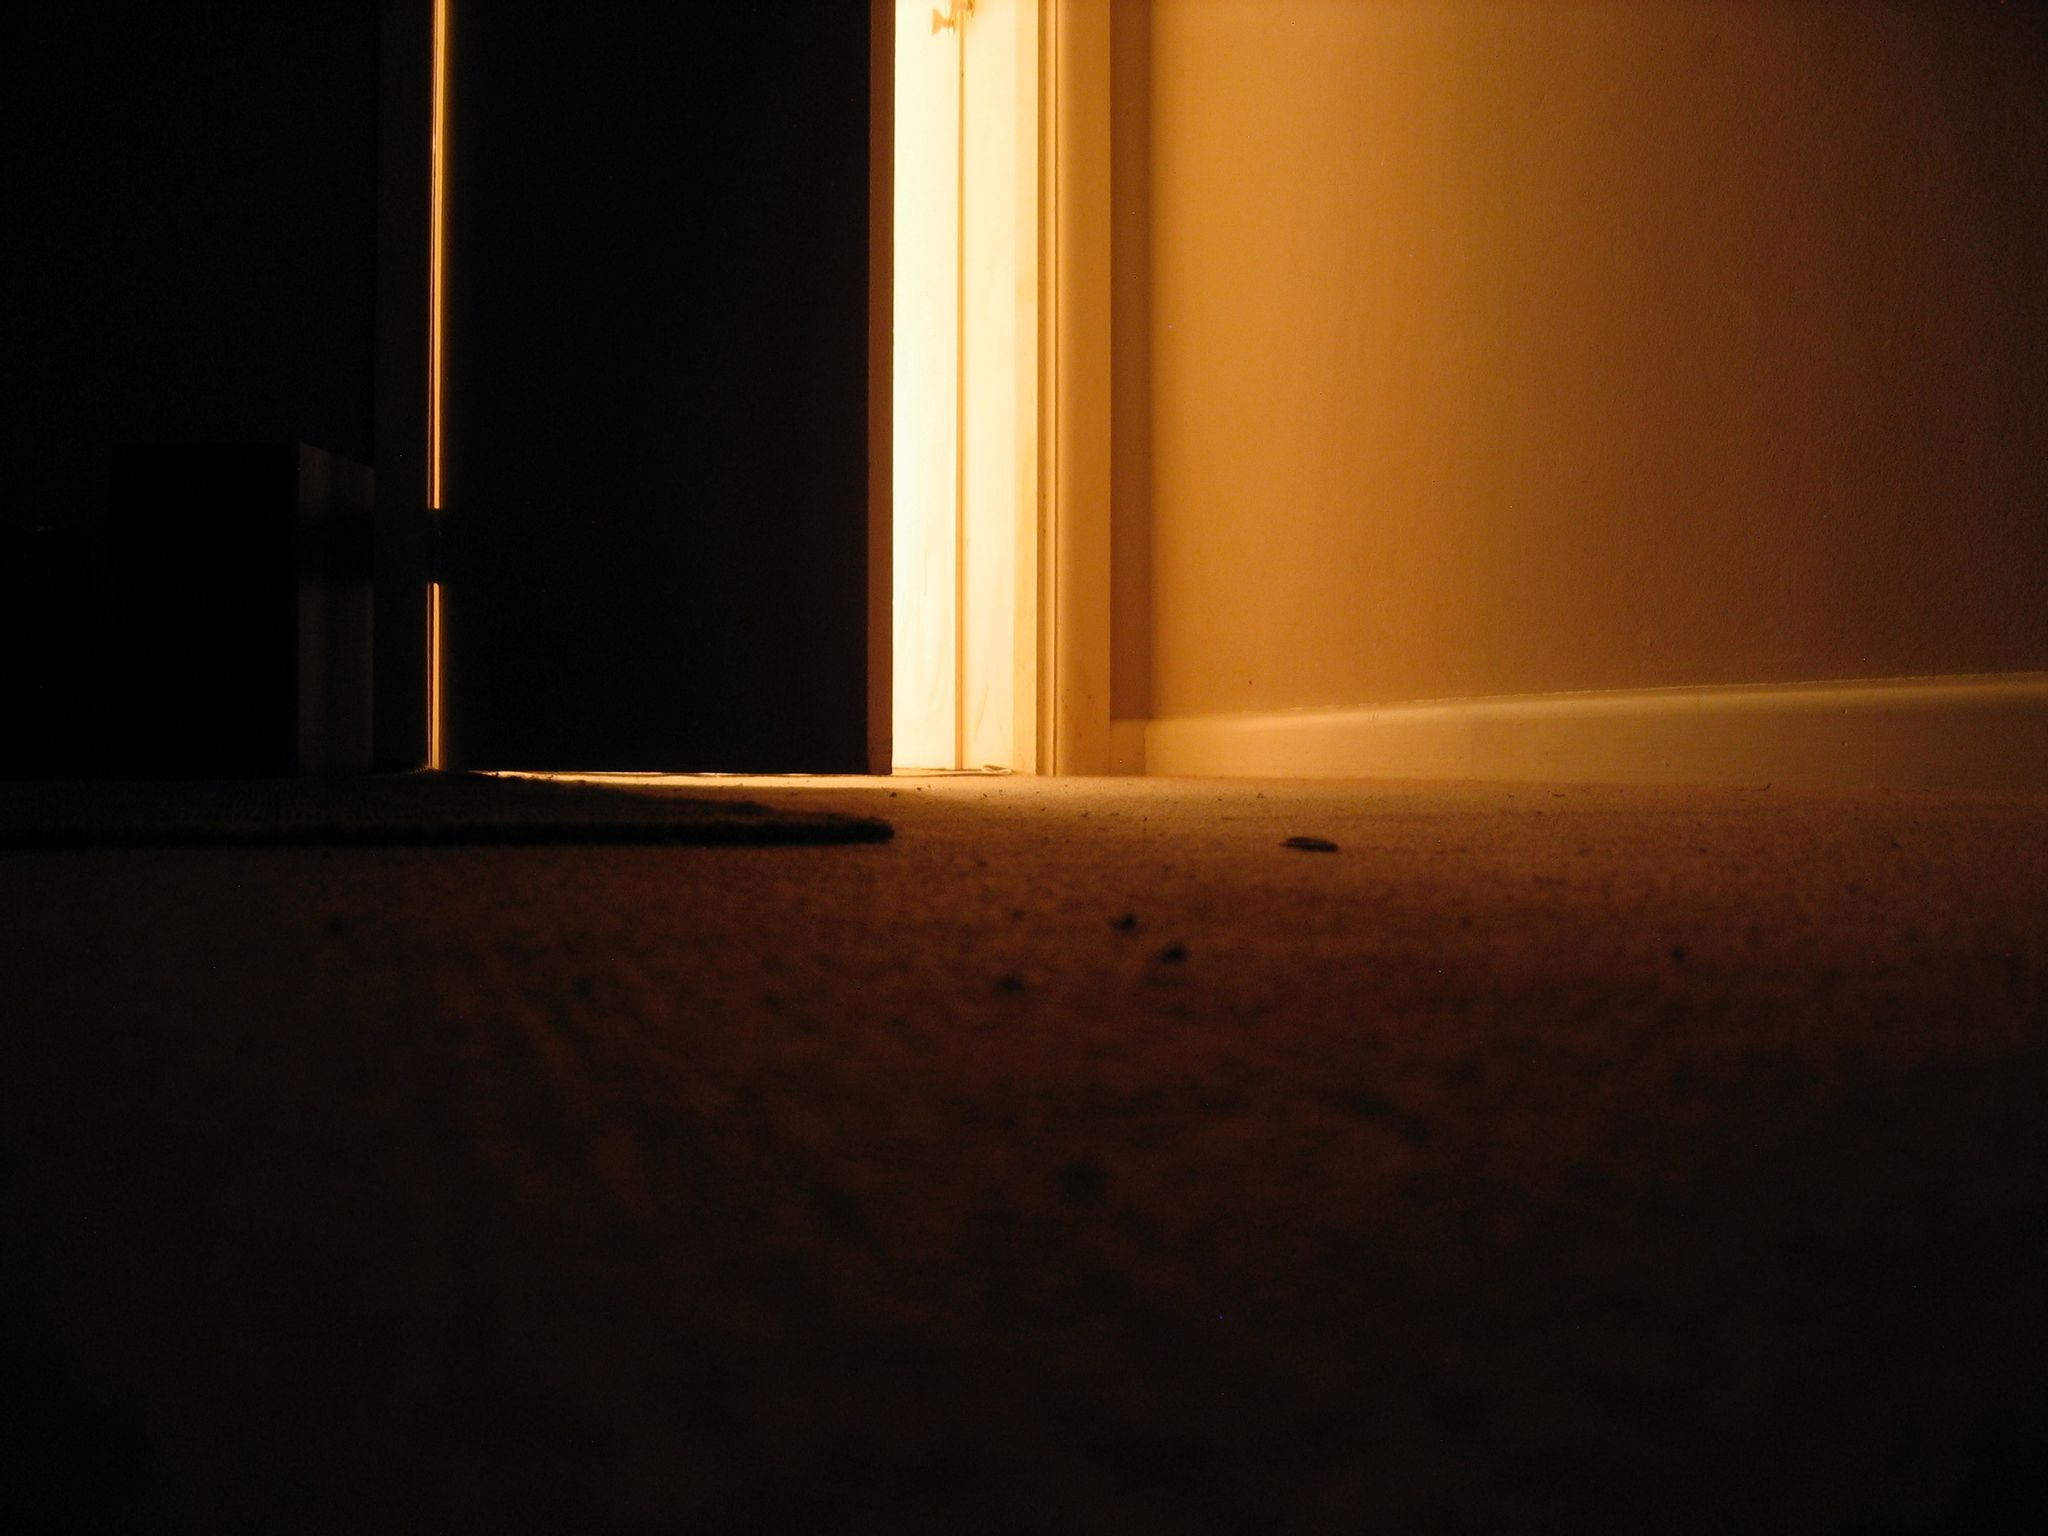 A long exposure photo looking out towards a partially-closed door, taken with the camera sitting on the floor. The room is dark and there's very warm light coming in from the doorway, and there's something indistinct lying on the floor next to the door. A t-shirt, perhaps?